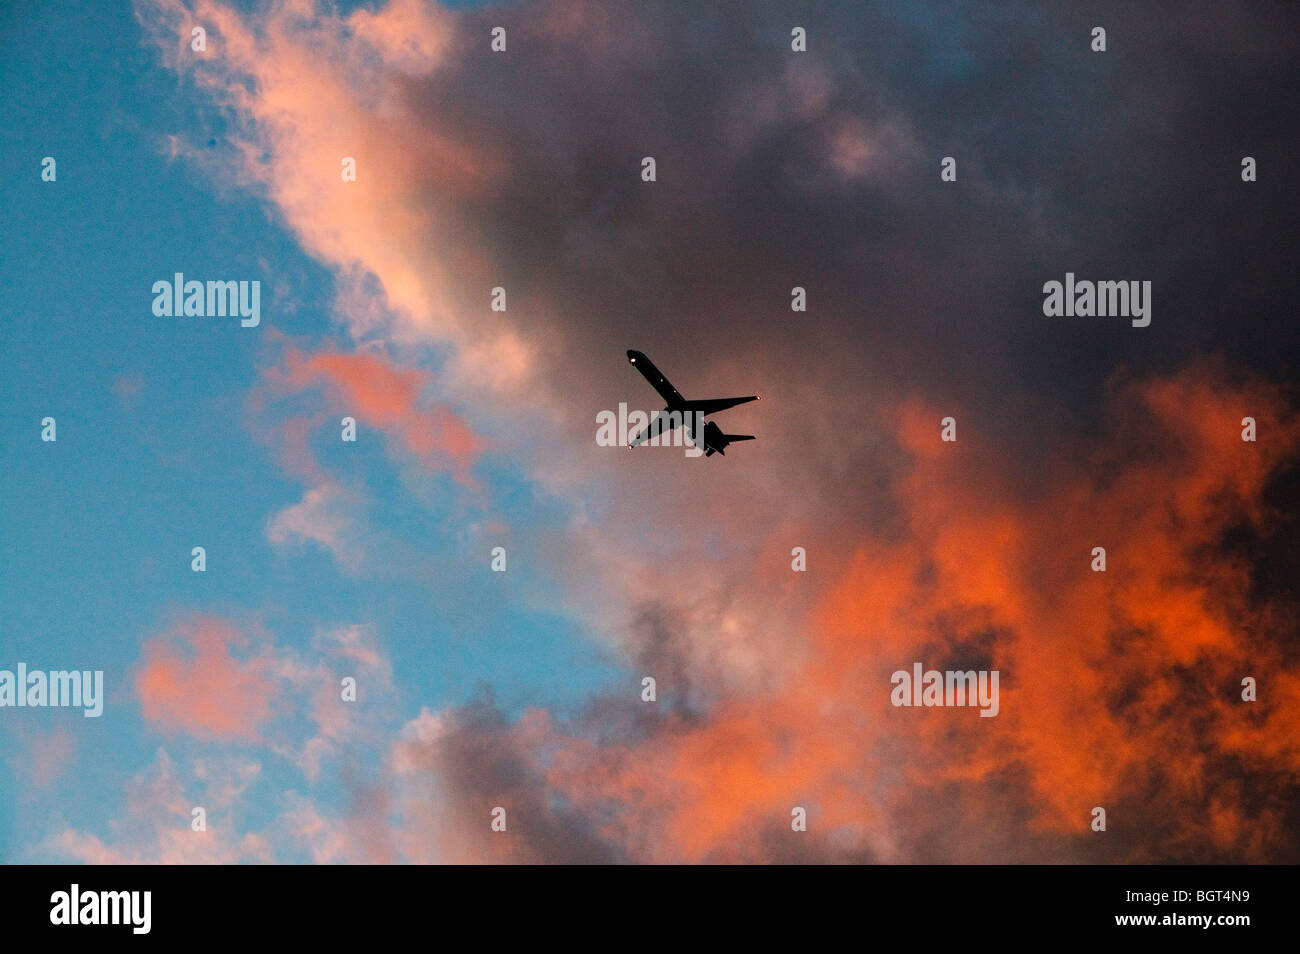 Jet on approach to land during sunset - Stock Image